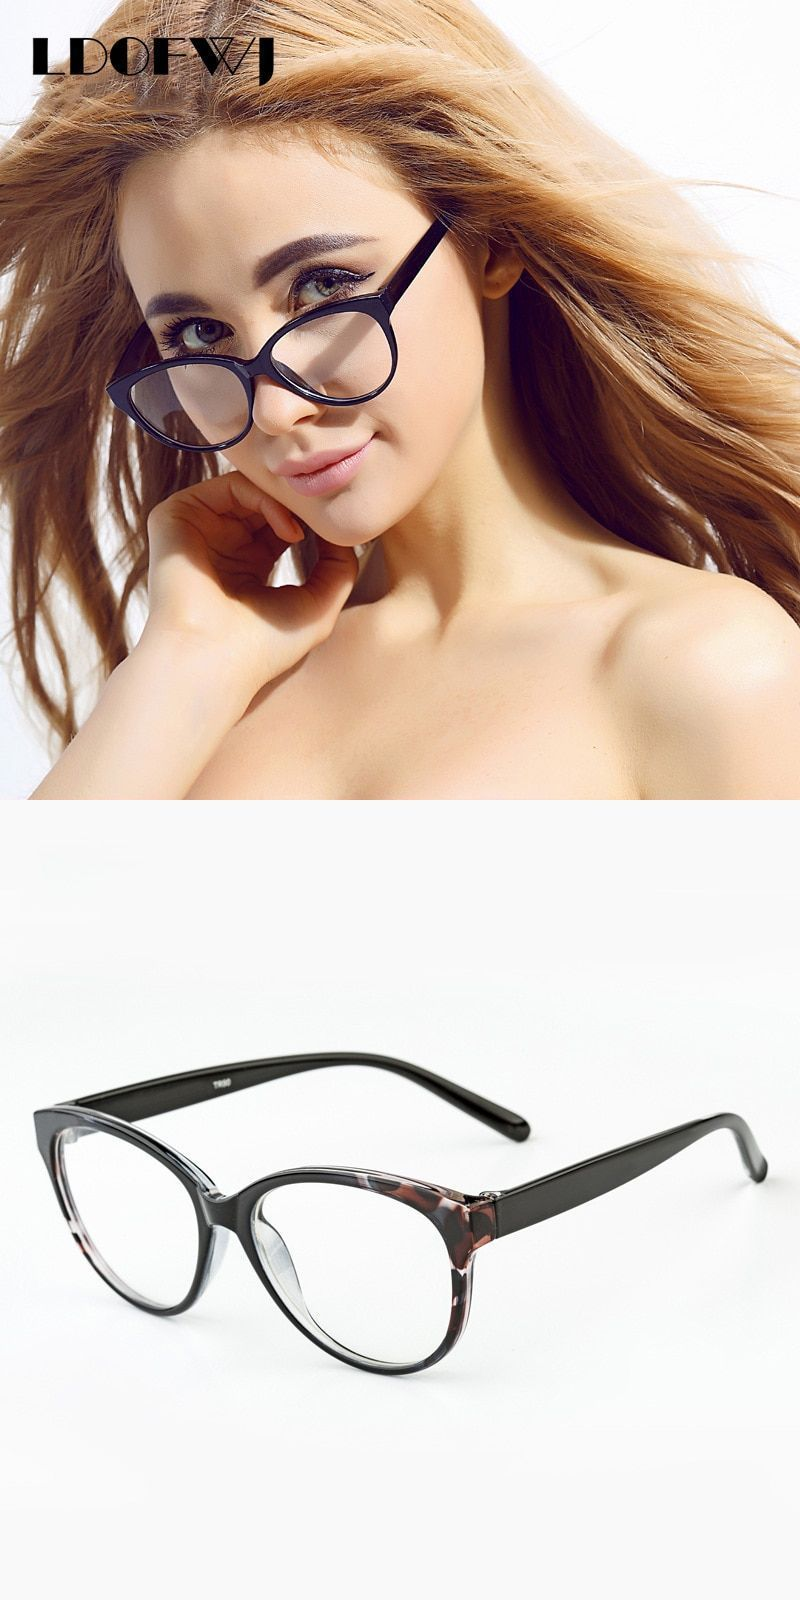 0f5f9752439 Tr 90 optical glasses frame black brown purple eyeglasses fresh myopia  spectacle student fashion prescription for women  frames  eyewear   accessories  women ...